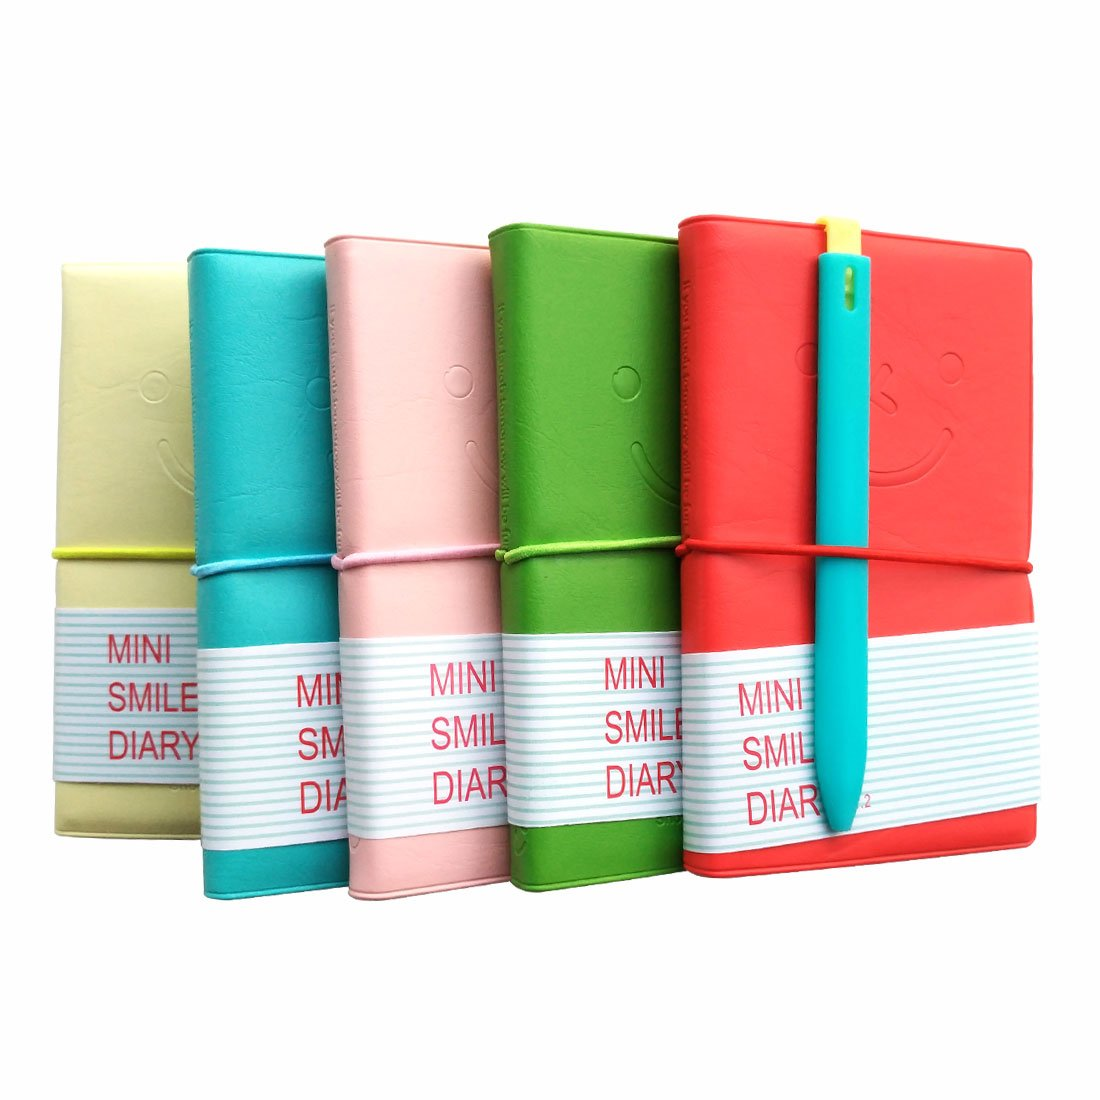 Memo Charming Portable Mini Smiley Diary Paper Notebook, Leather Shell, 100 Sheets, Color (Green, Red, Lemon, Mint, Pink) Set of 5+Bookmark ballpoint gift